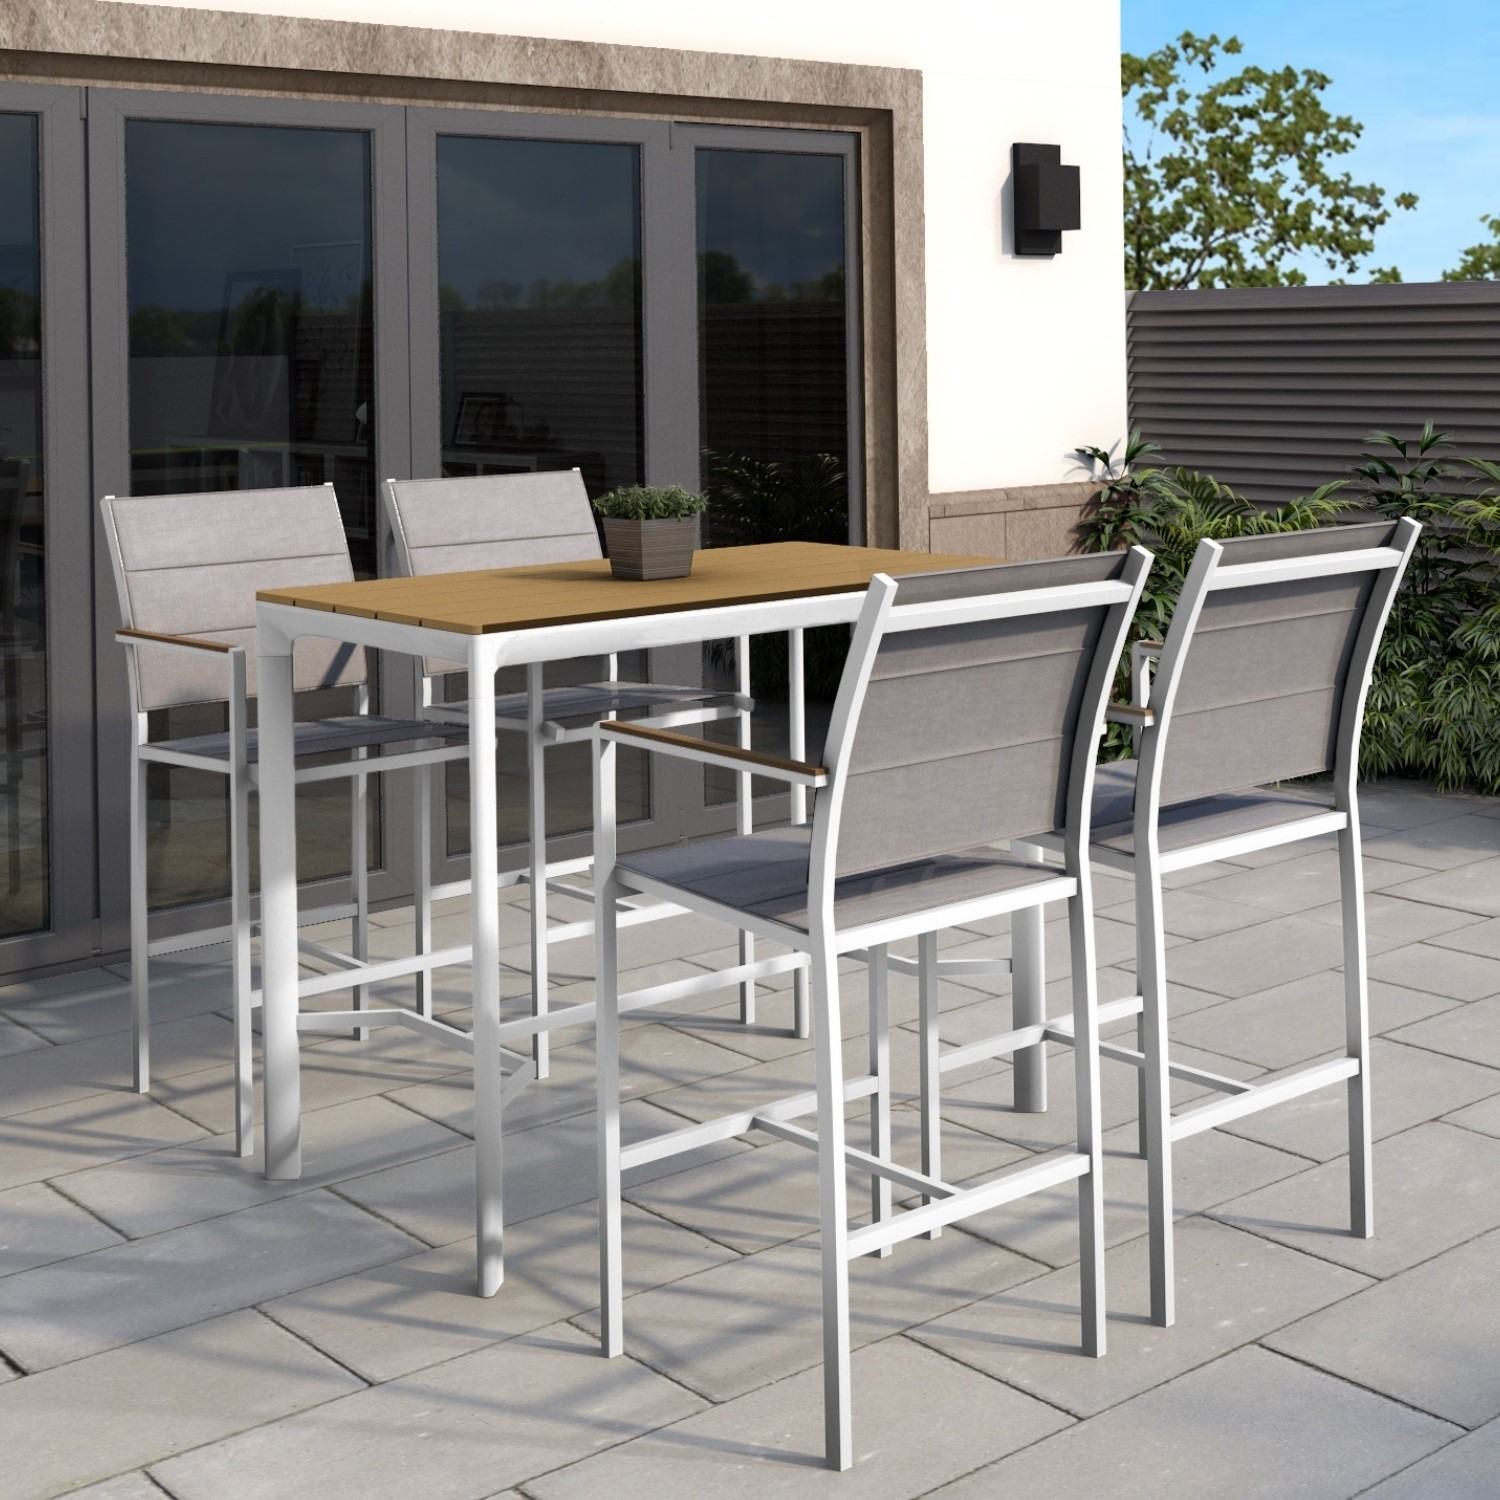 White Outdoor Bar Set With 4 Bar Stools Furniture123